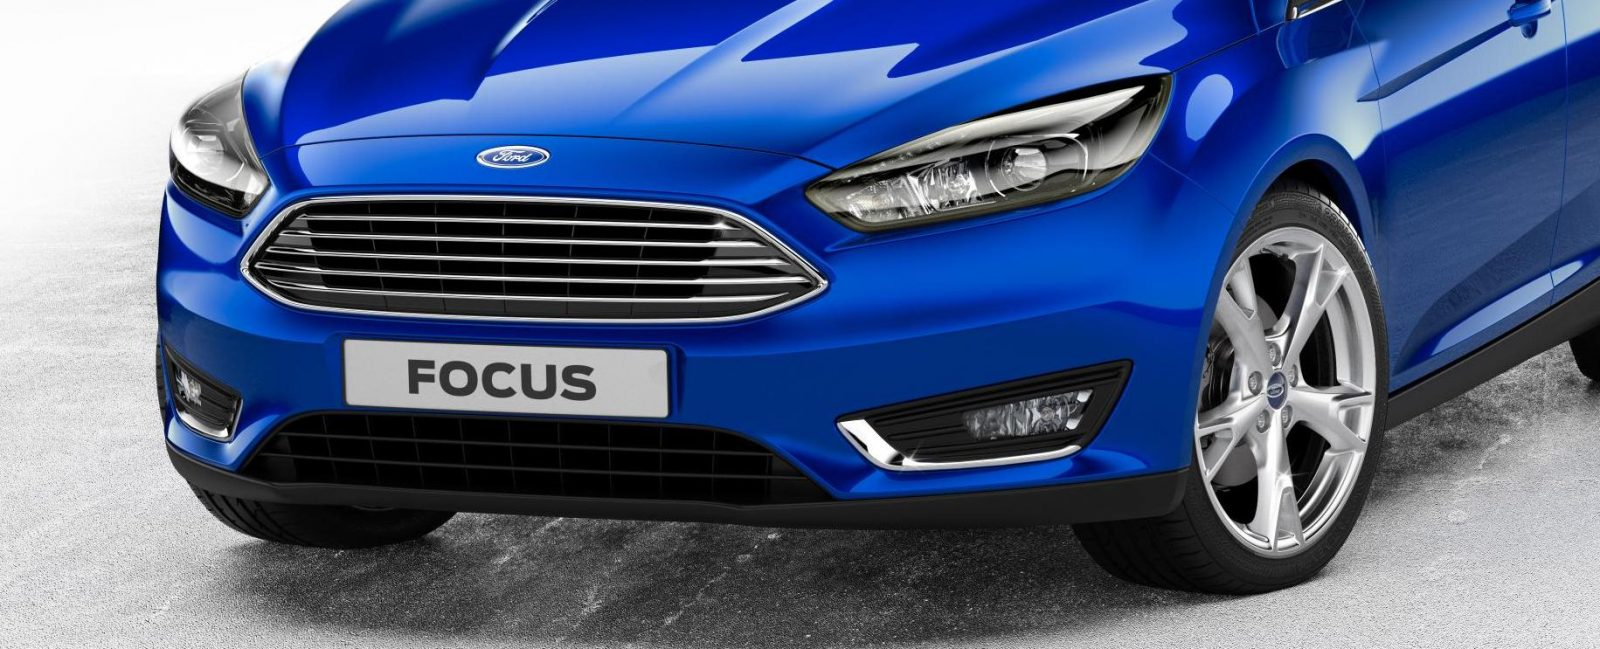 2015_Ford_Focus_5Door_02